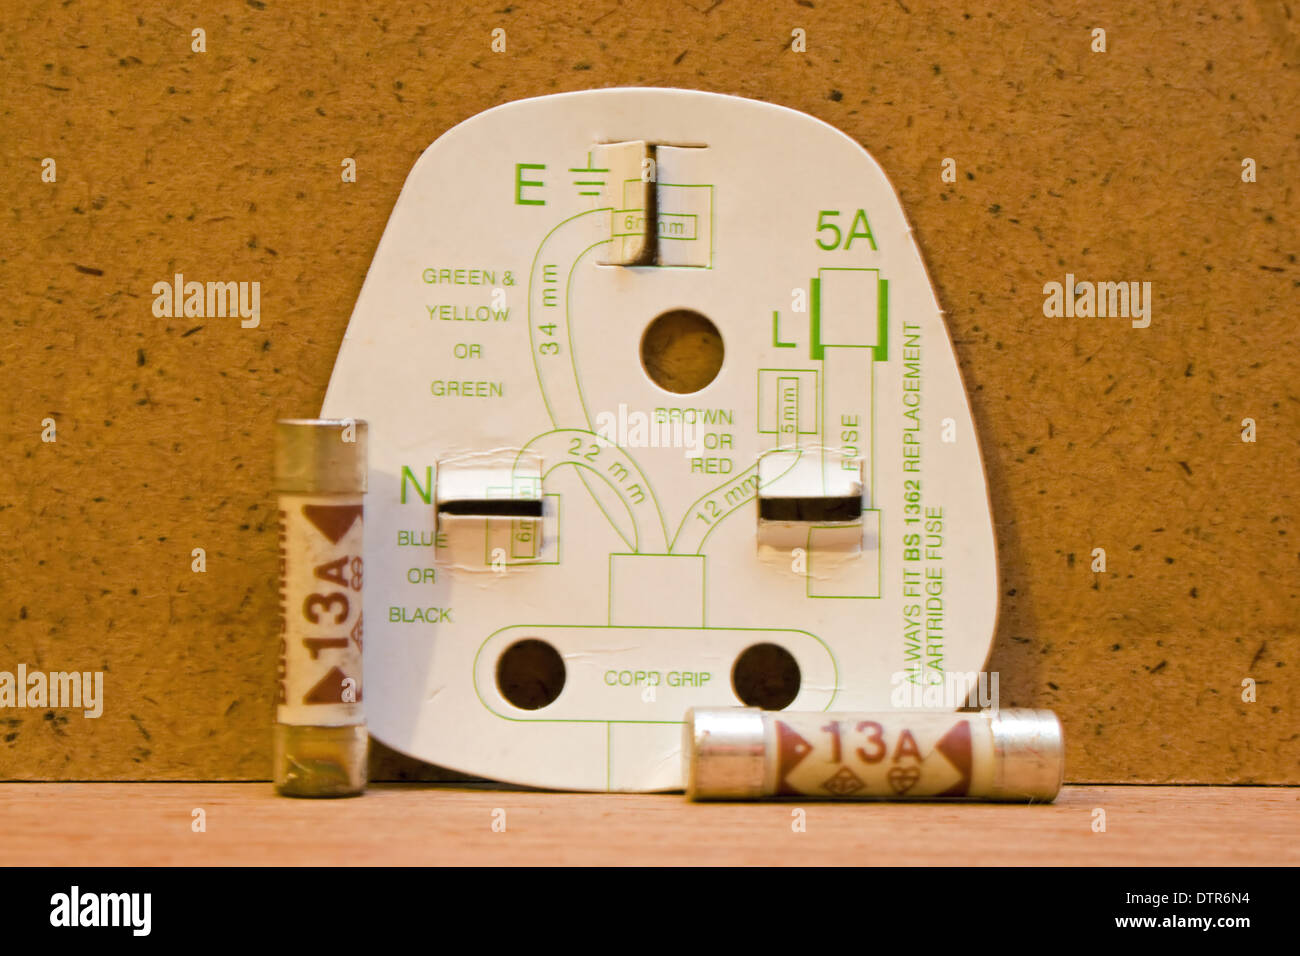 Uk Plug Wiring Diagram 22 Images Diagrams Three Pin With 13amp Fuses Stock Photo